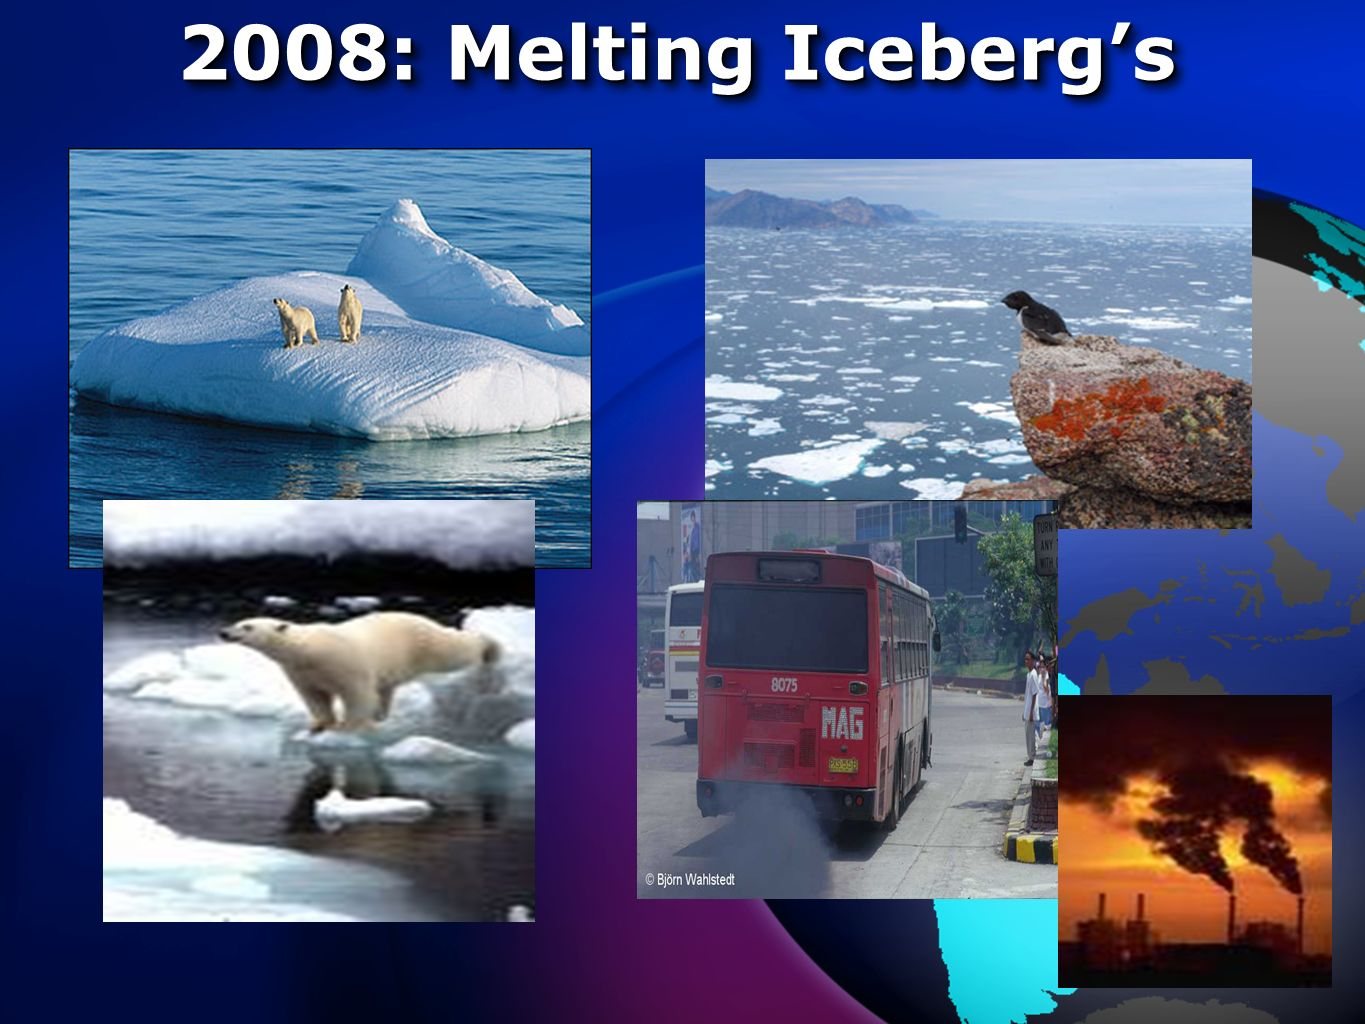 2008: Melting Icebergs